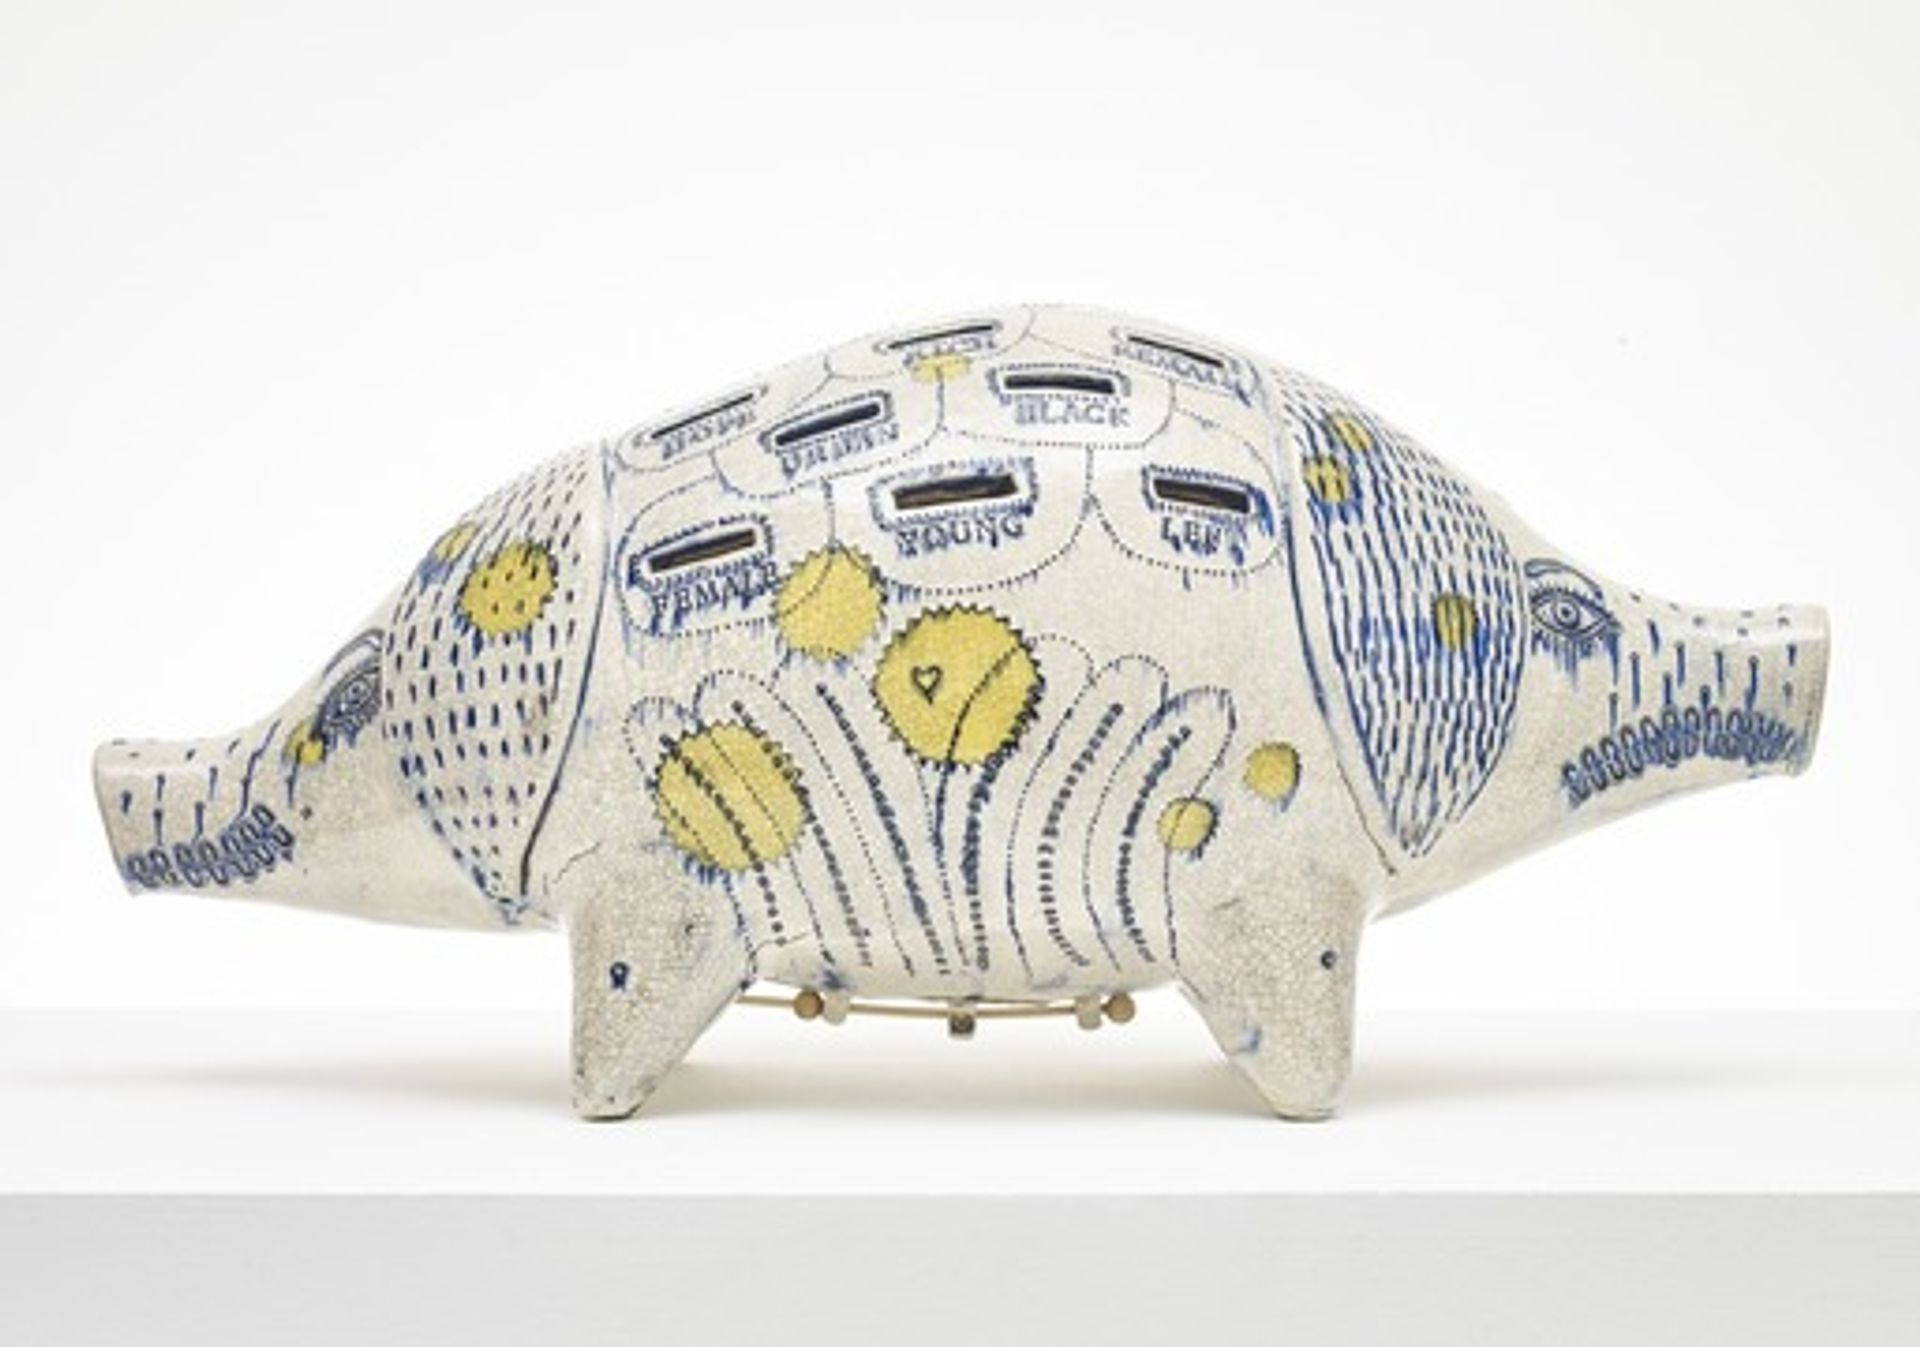 Grayson Perry, Long Pig (2017) (Courtesy the Artist, Paragon Press and Victoria Miro, London, Photography: Stephen White © Grayson Perry)